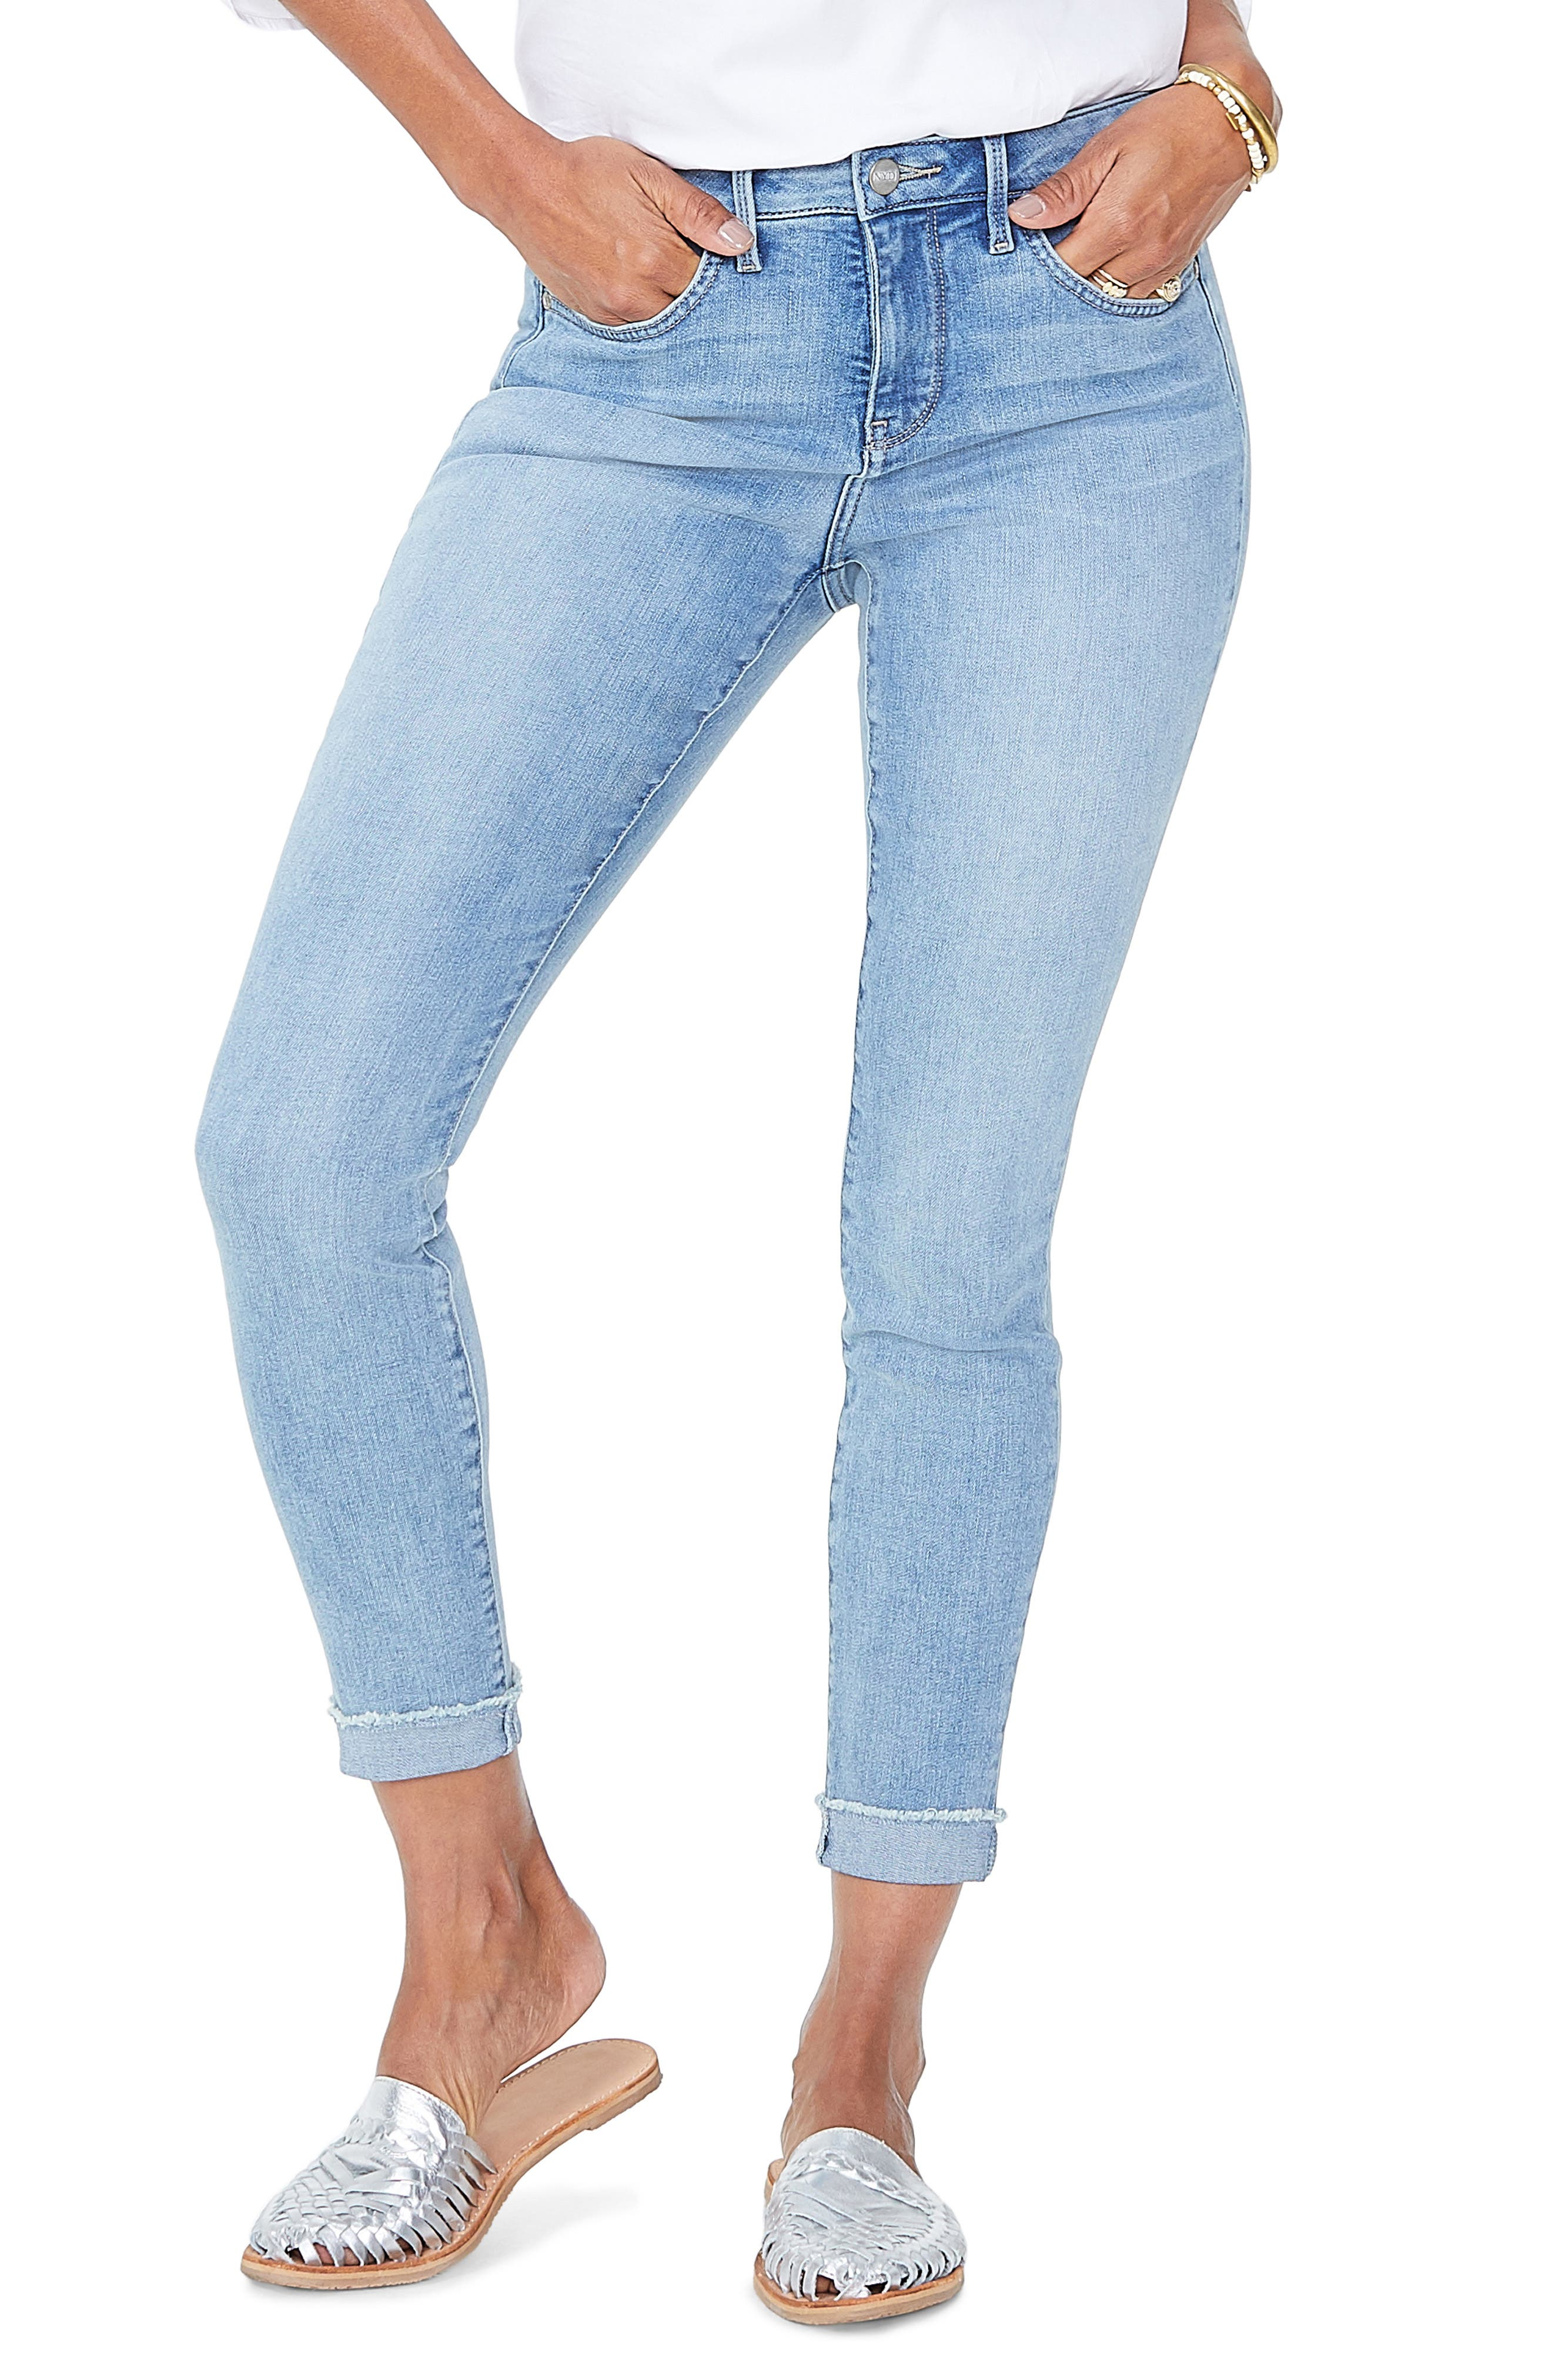 Ami Cuffed Ankle Skinny Jeans,                             Main thumbnail 1, color,                             DREAMSTATE